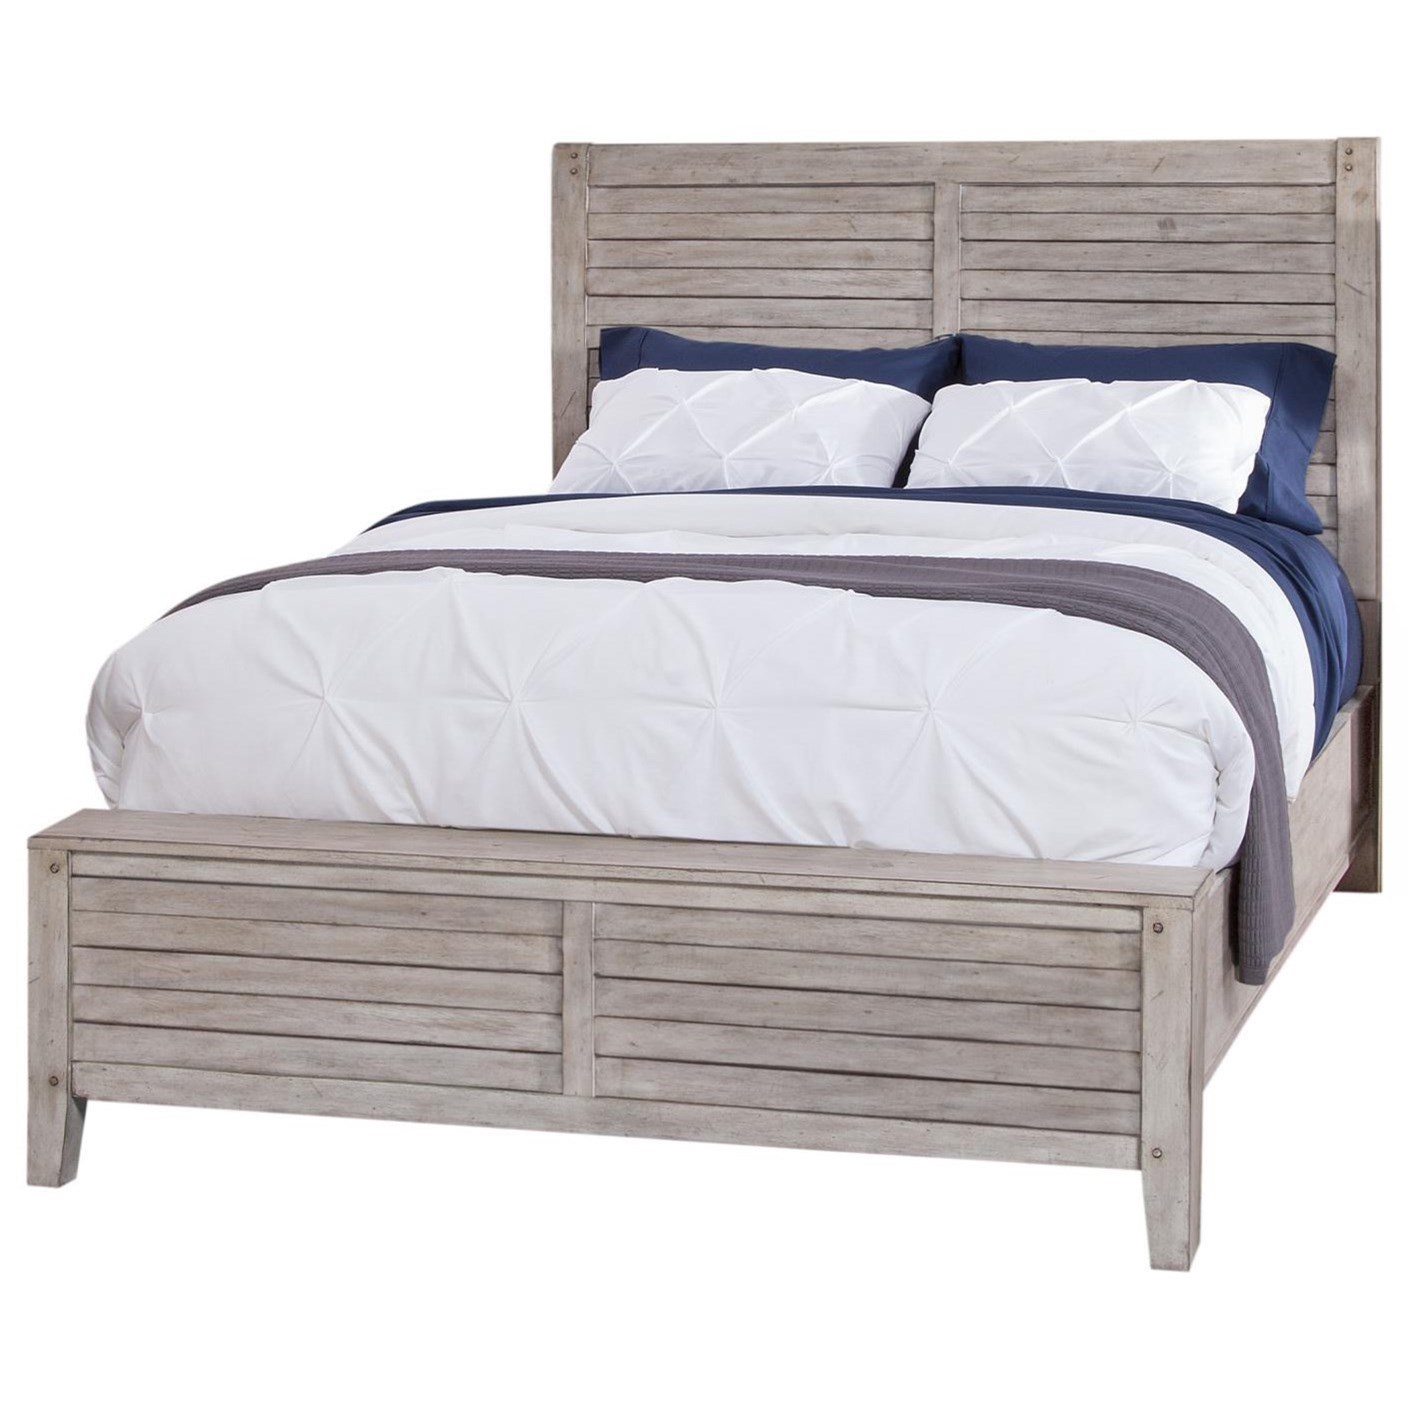 Aurora King Panel Bed by American Woodcrafters at Carolina Direct